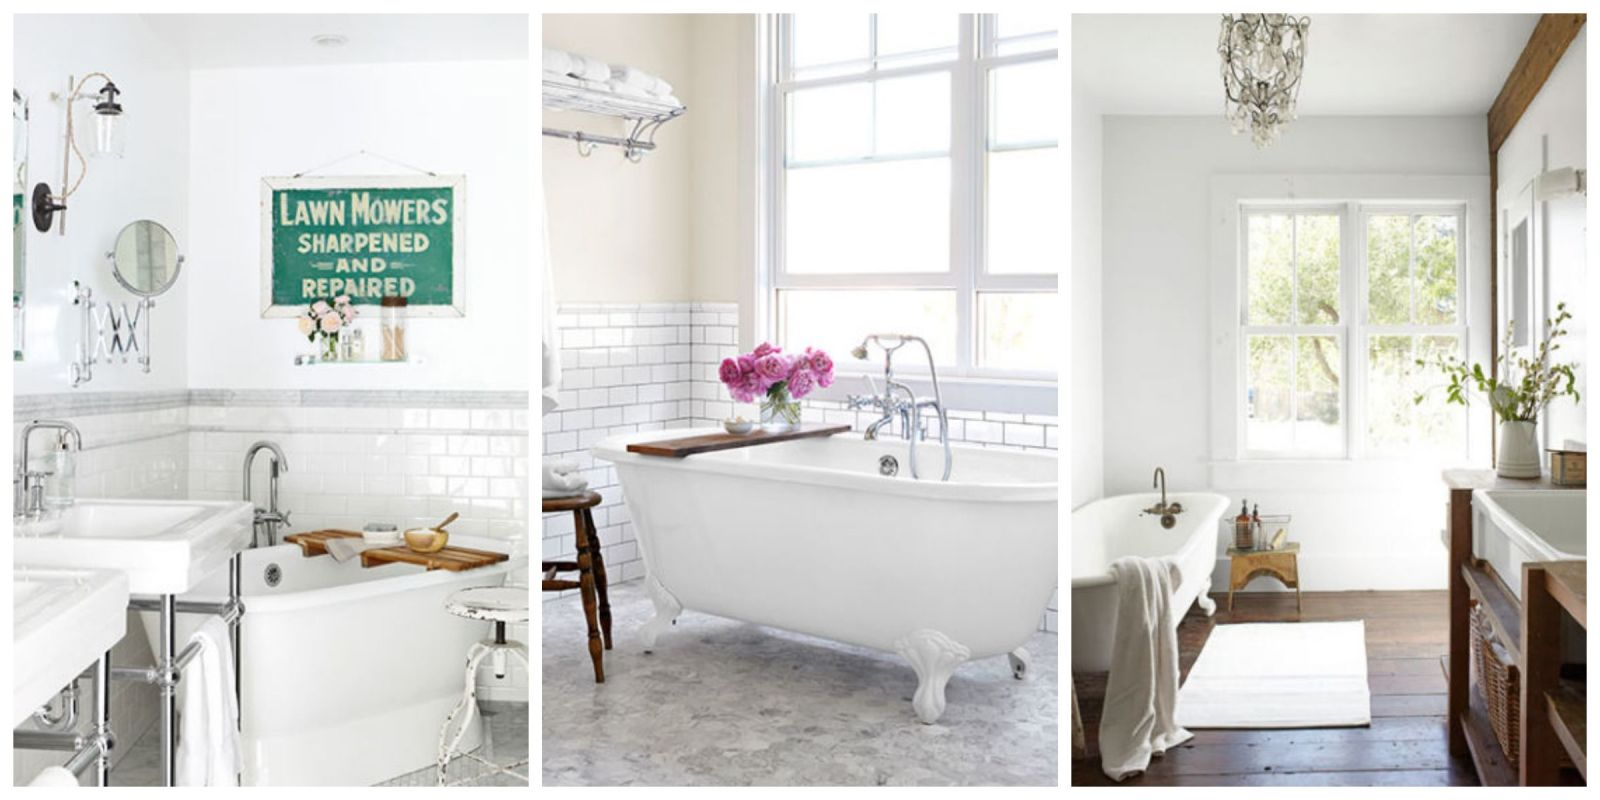 Bathroom Decoration Ideas: Decorating With White For Bathrooms